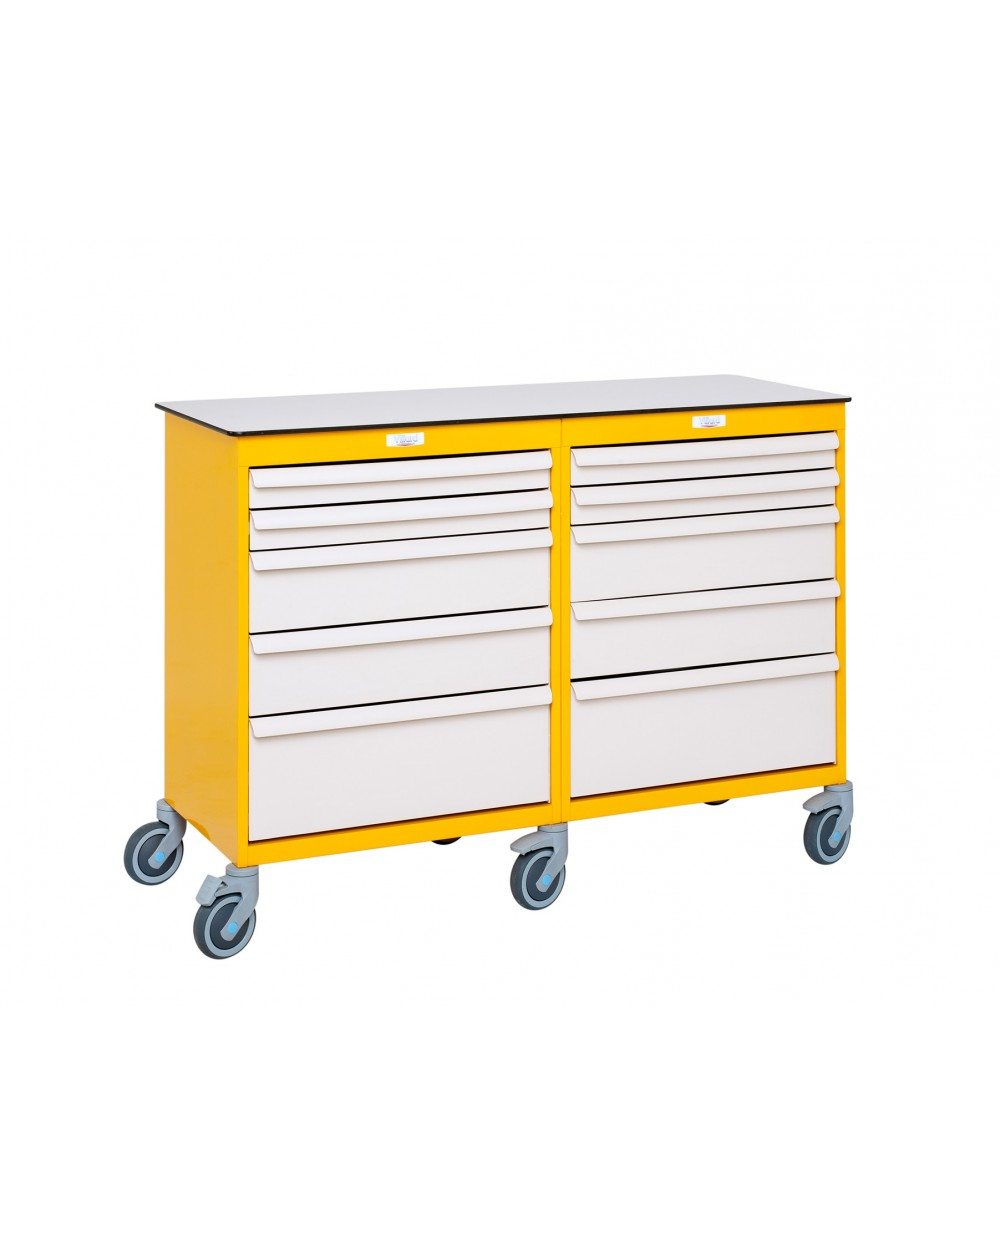 Plan De Travail Mobile mobile workstation with drawers 2 columns 9 levels equipped